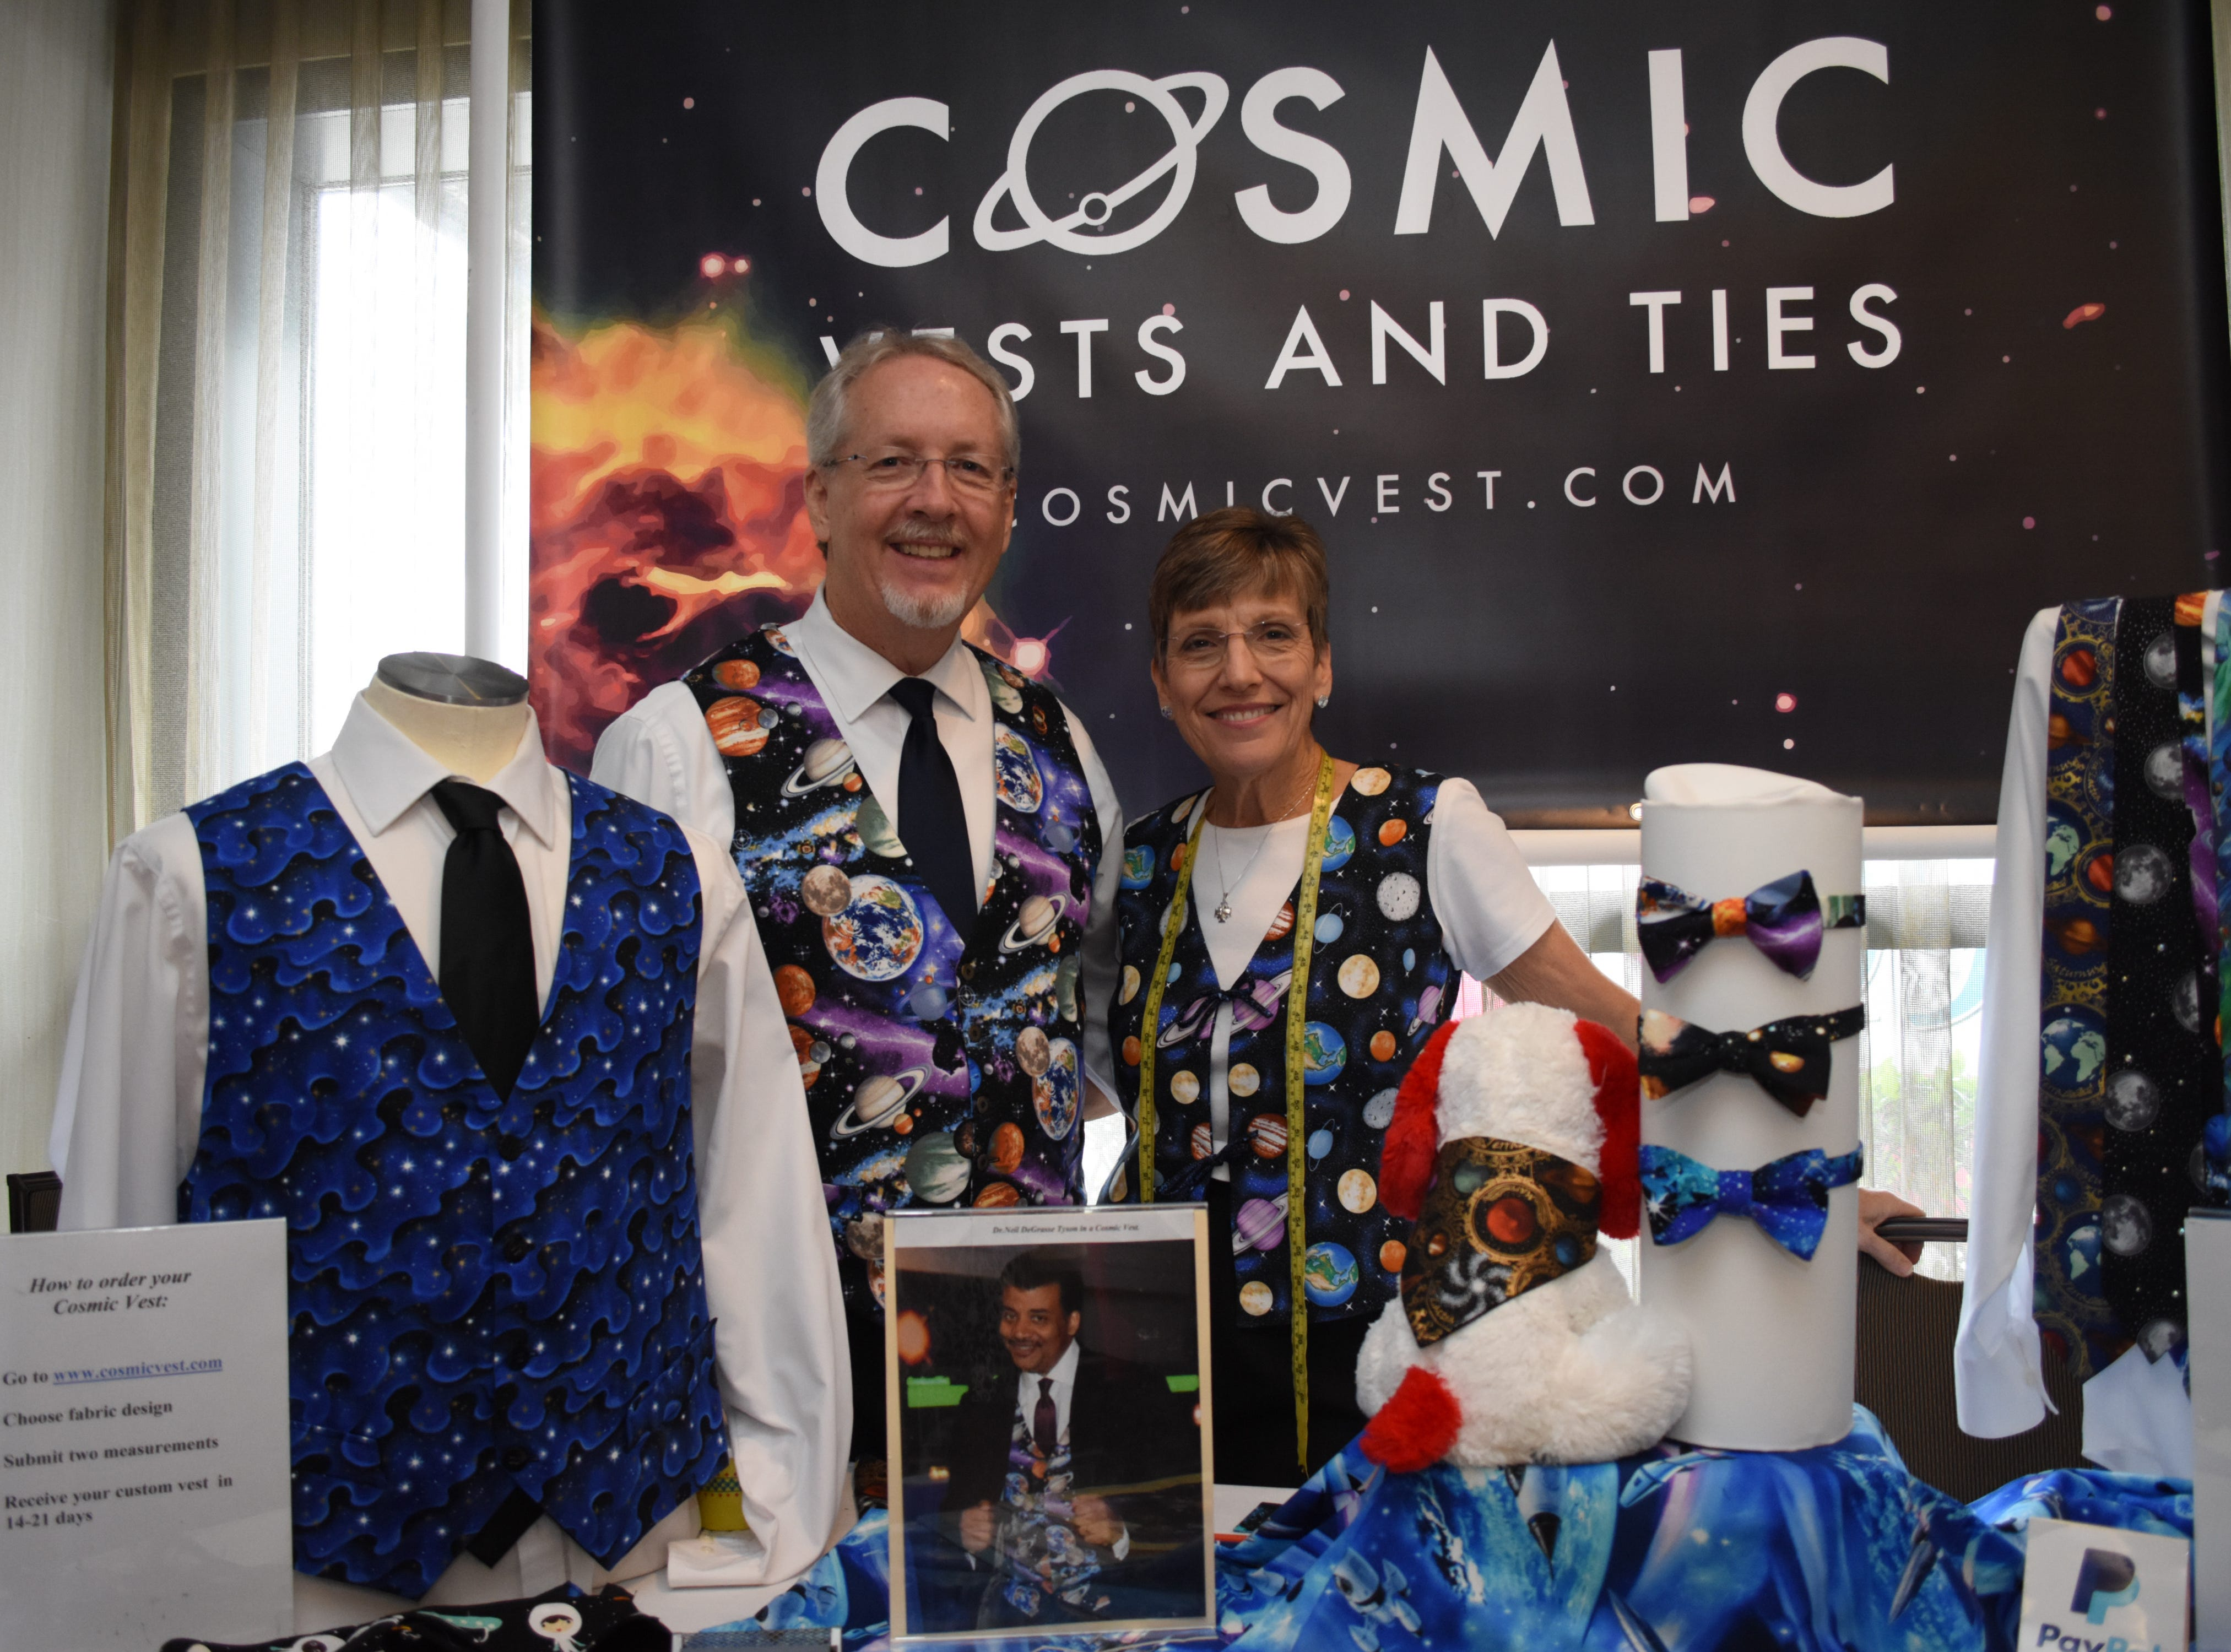 Mary and Patrick McCarthy with Cosmic Vests and Ties pose for a photo.